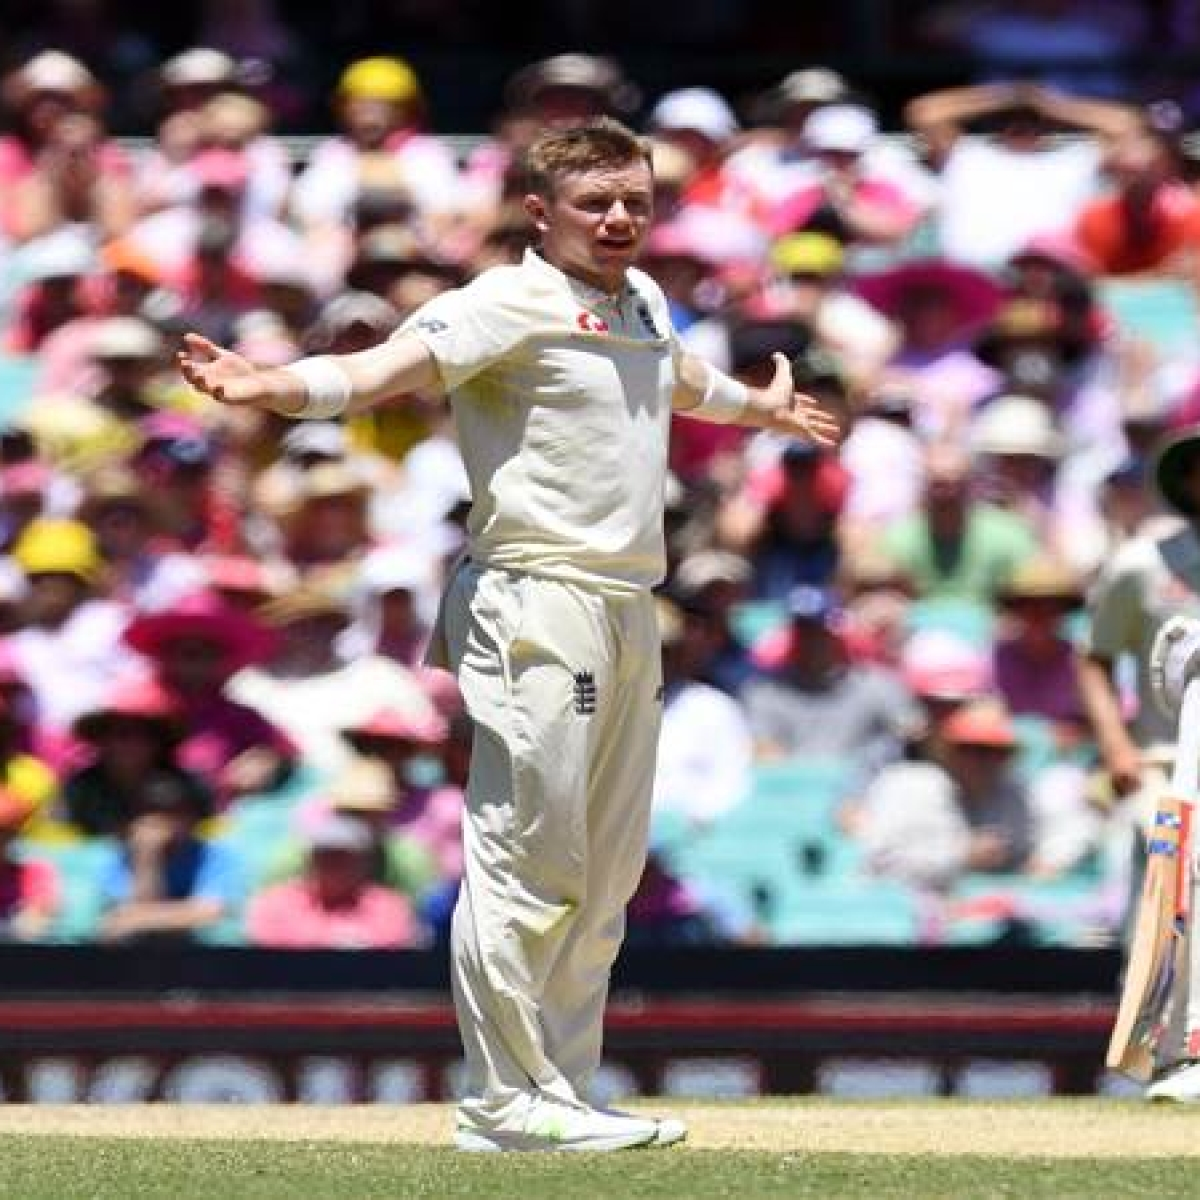 Top 5 Ashes encounters in the last decade